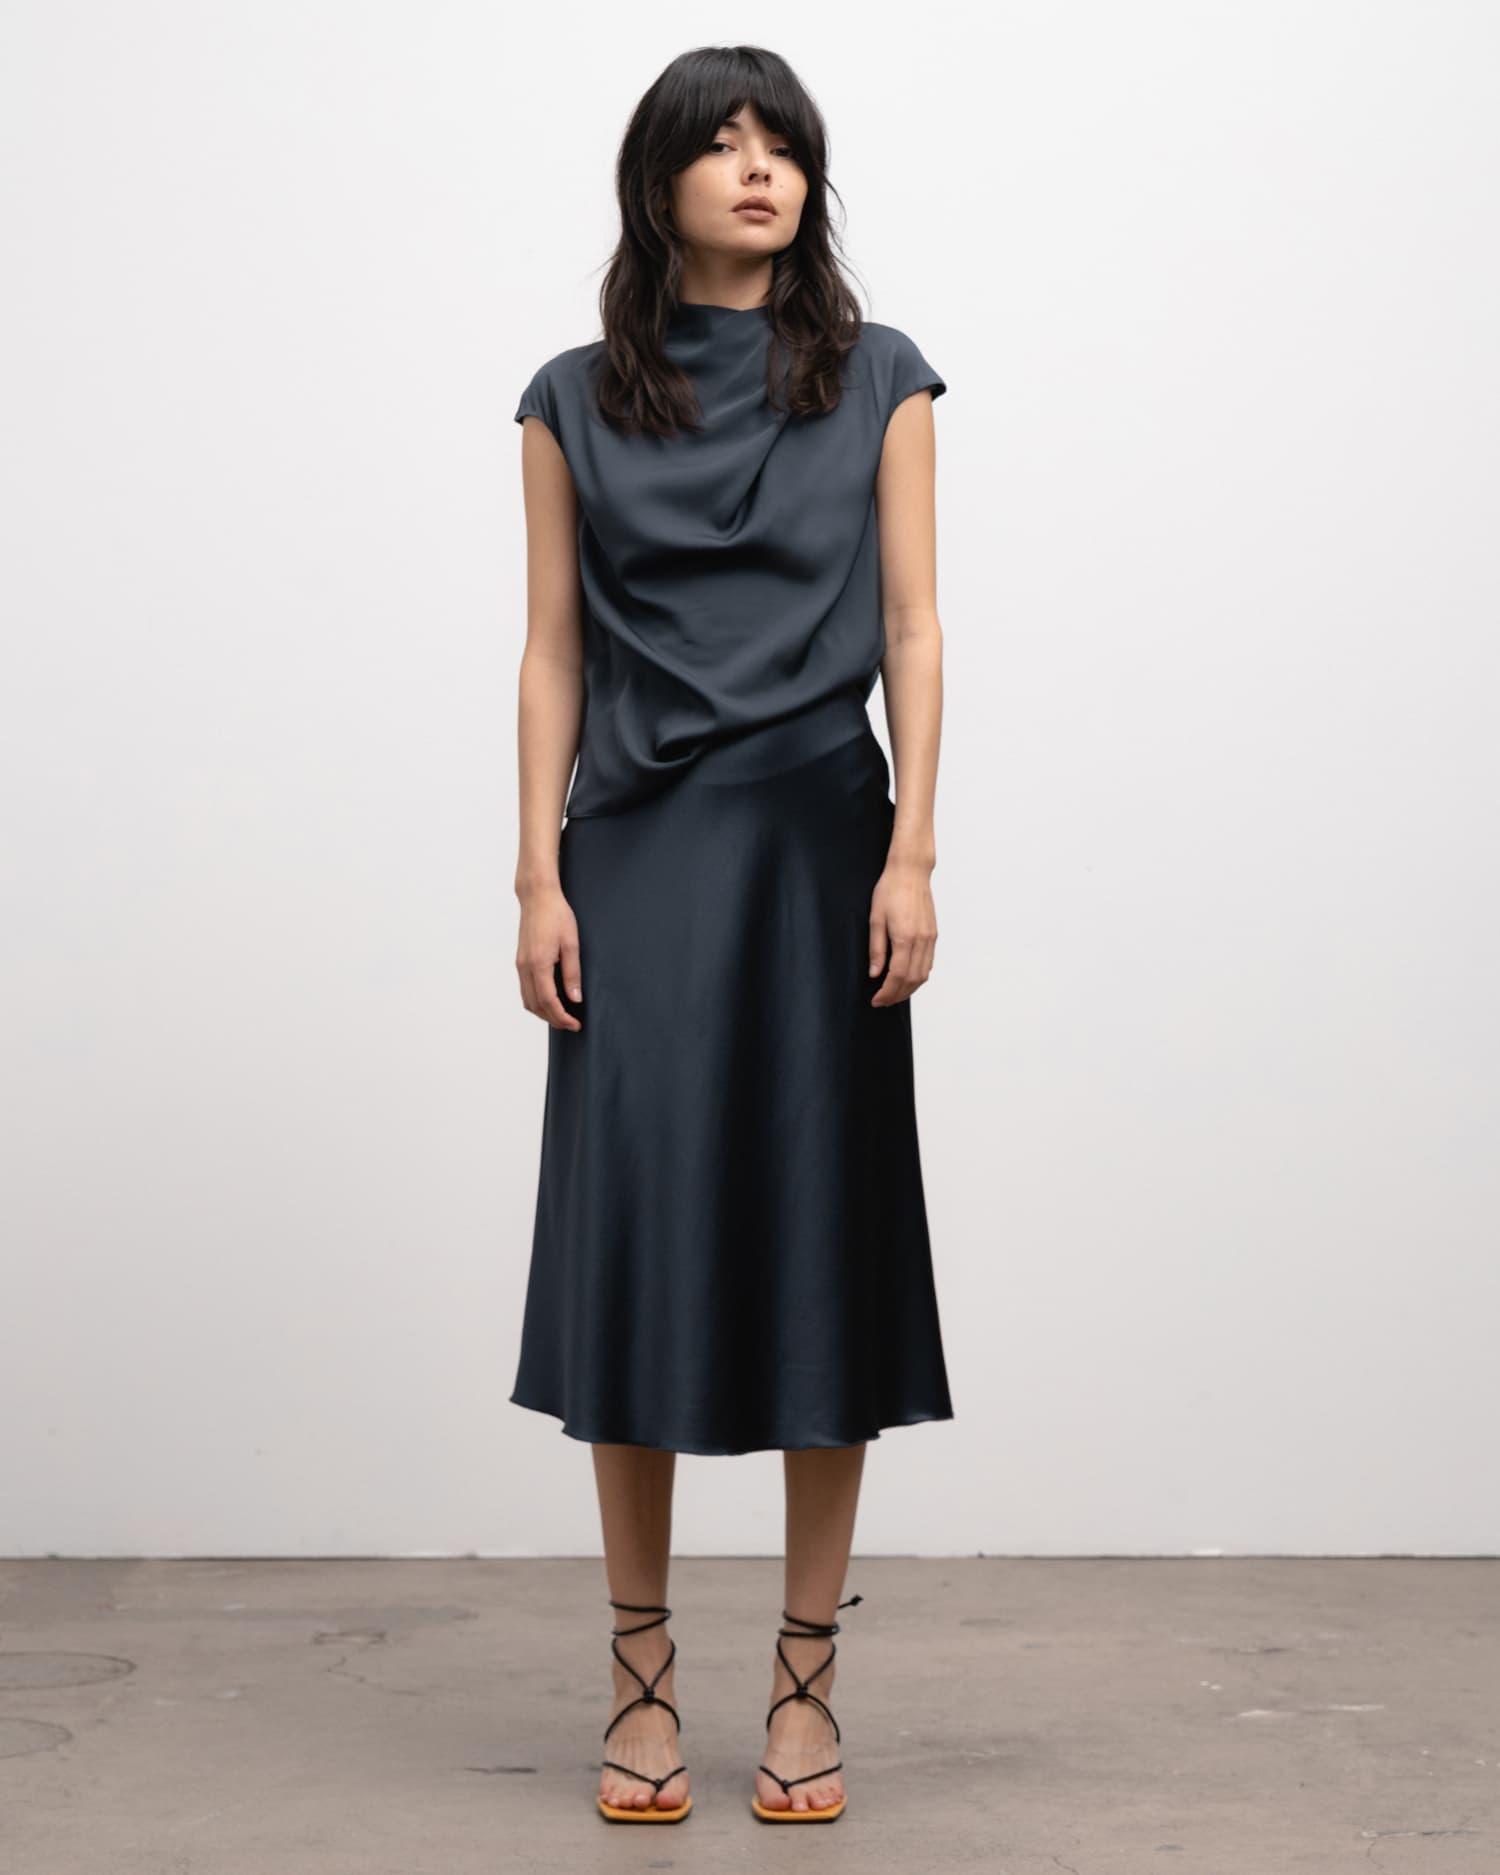 Ahlvar Gallery Lima top blue grey